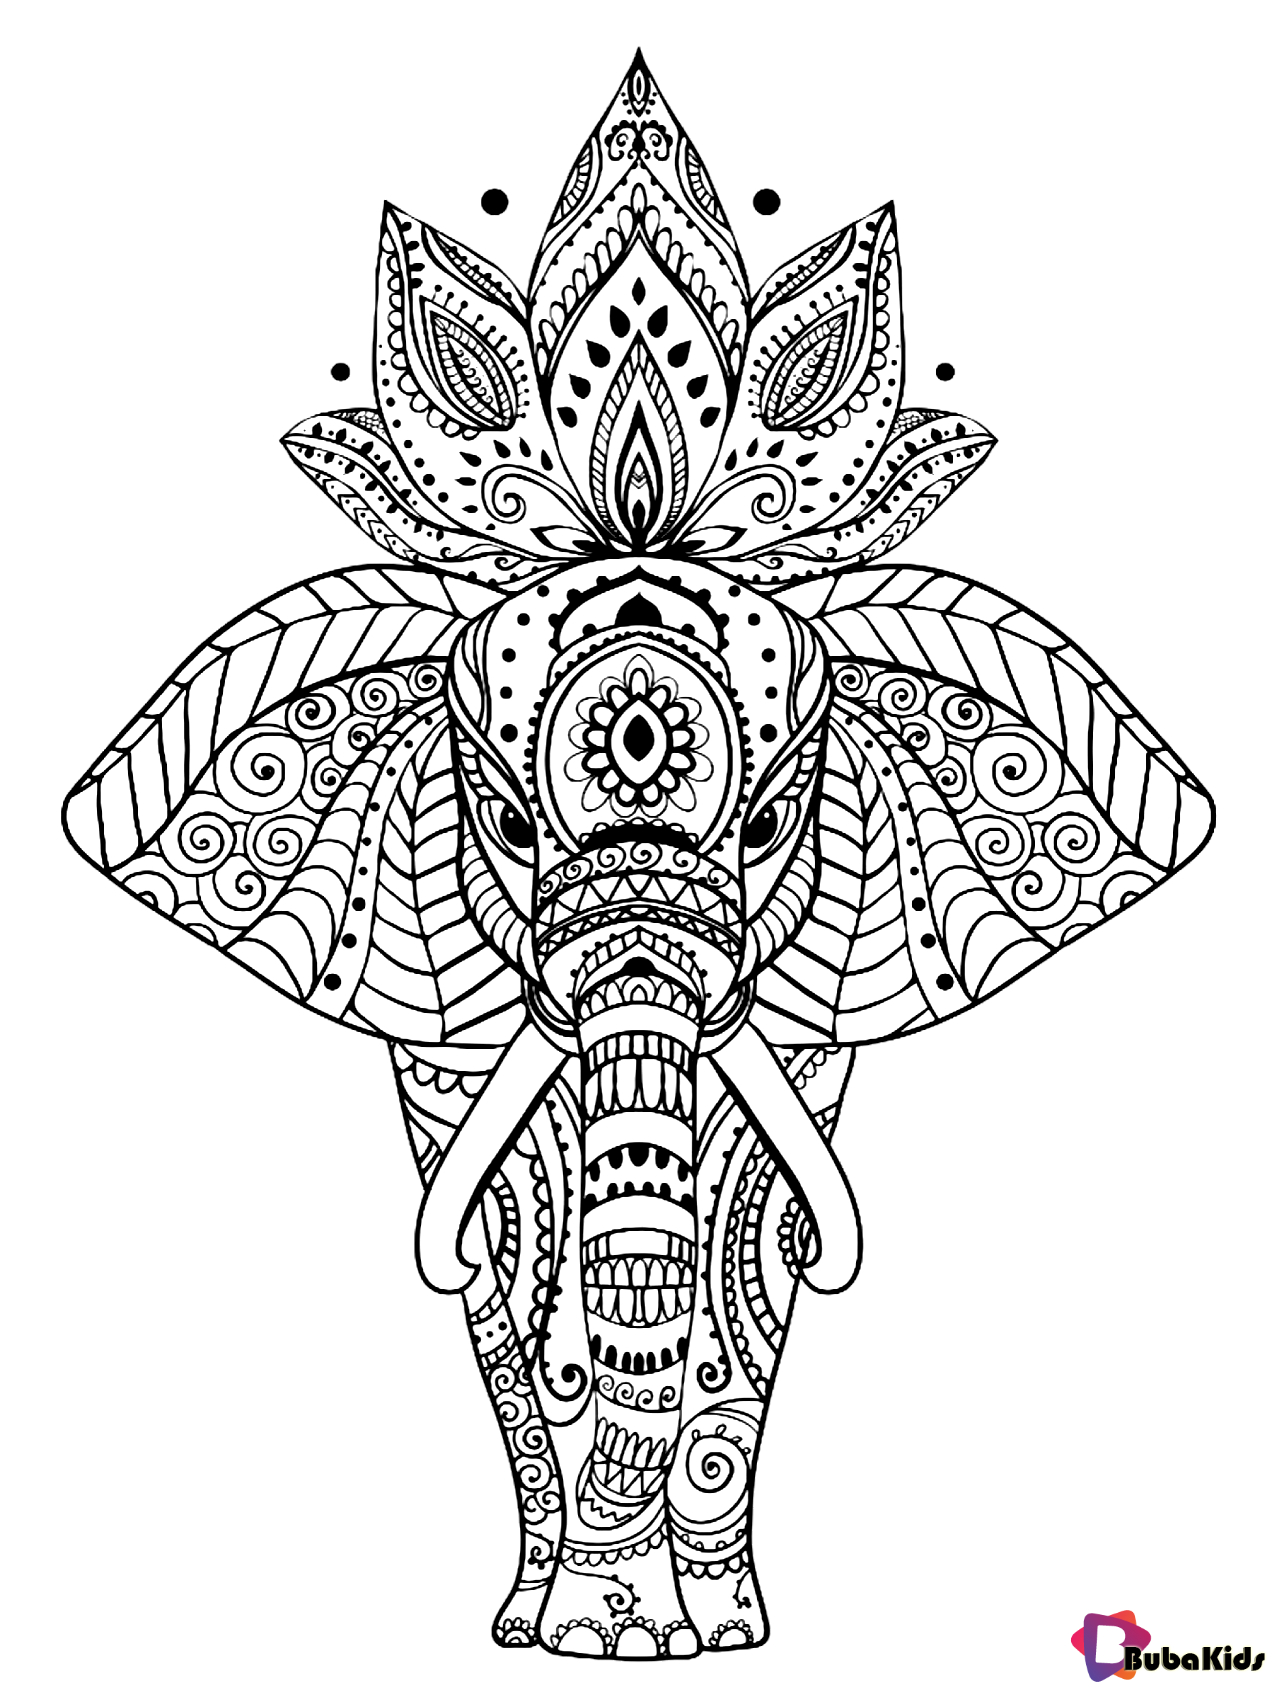 Animal elephant mandala coloring page for kids and adults ...